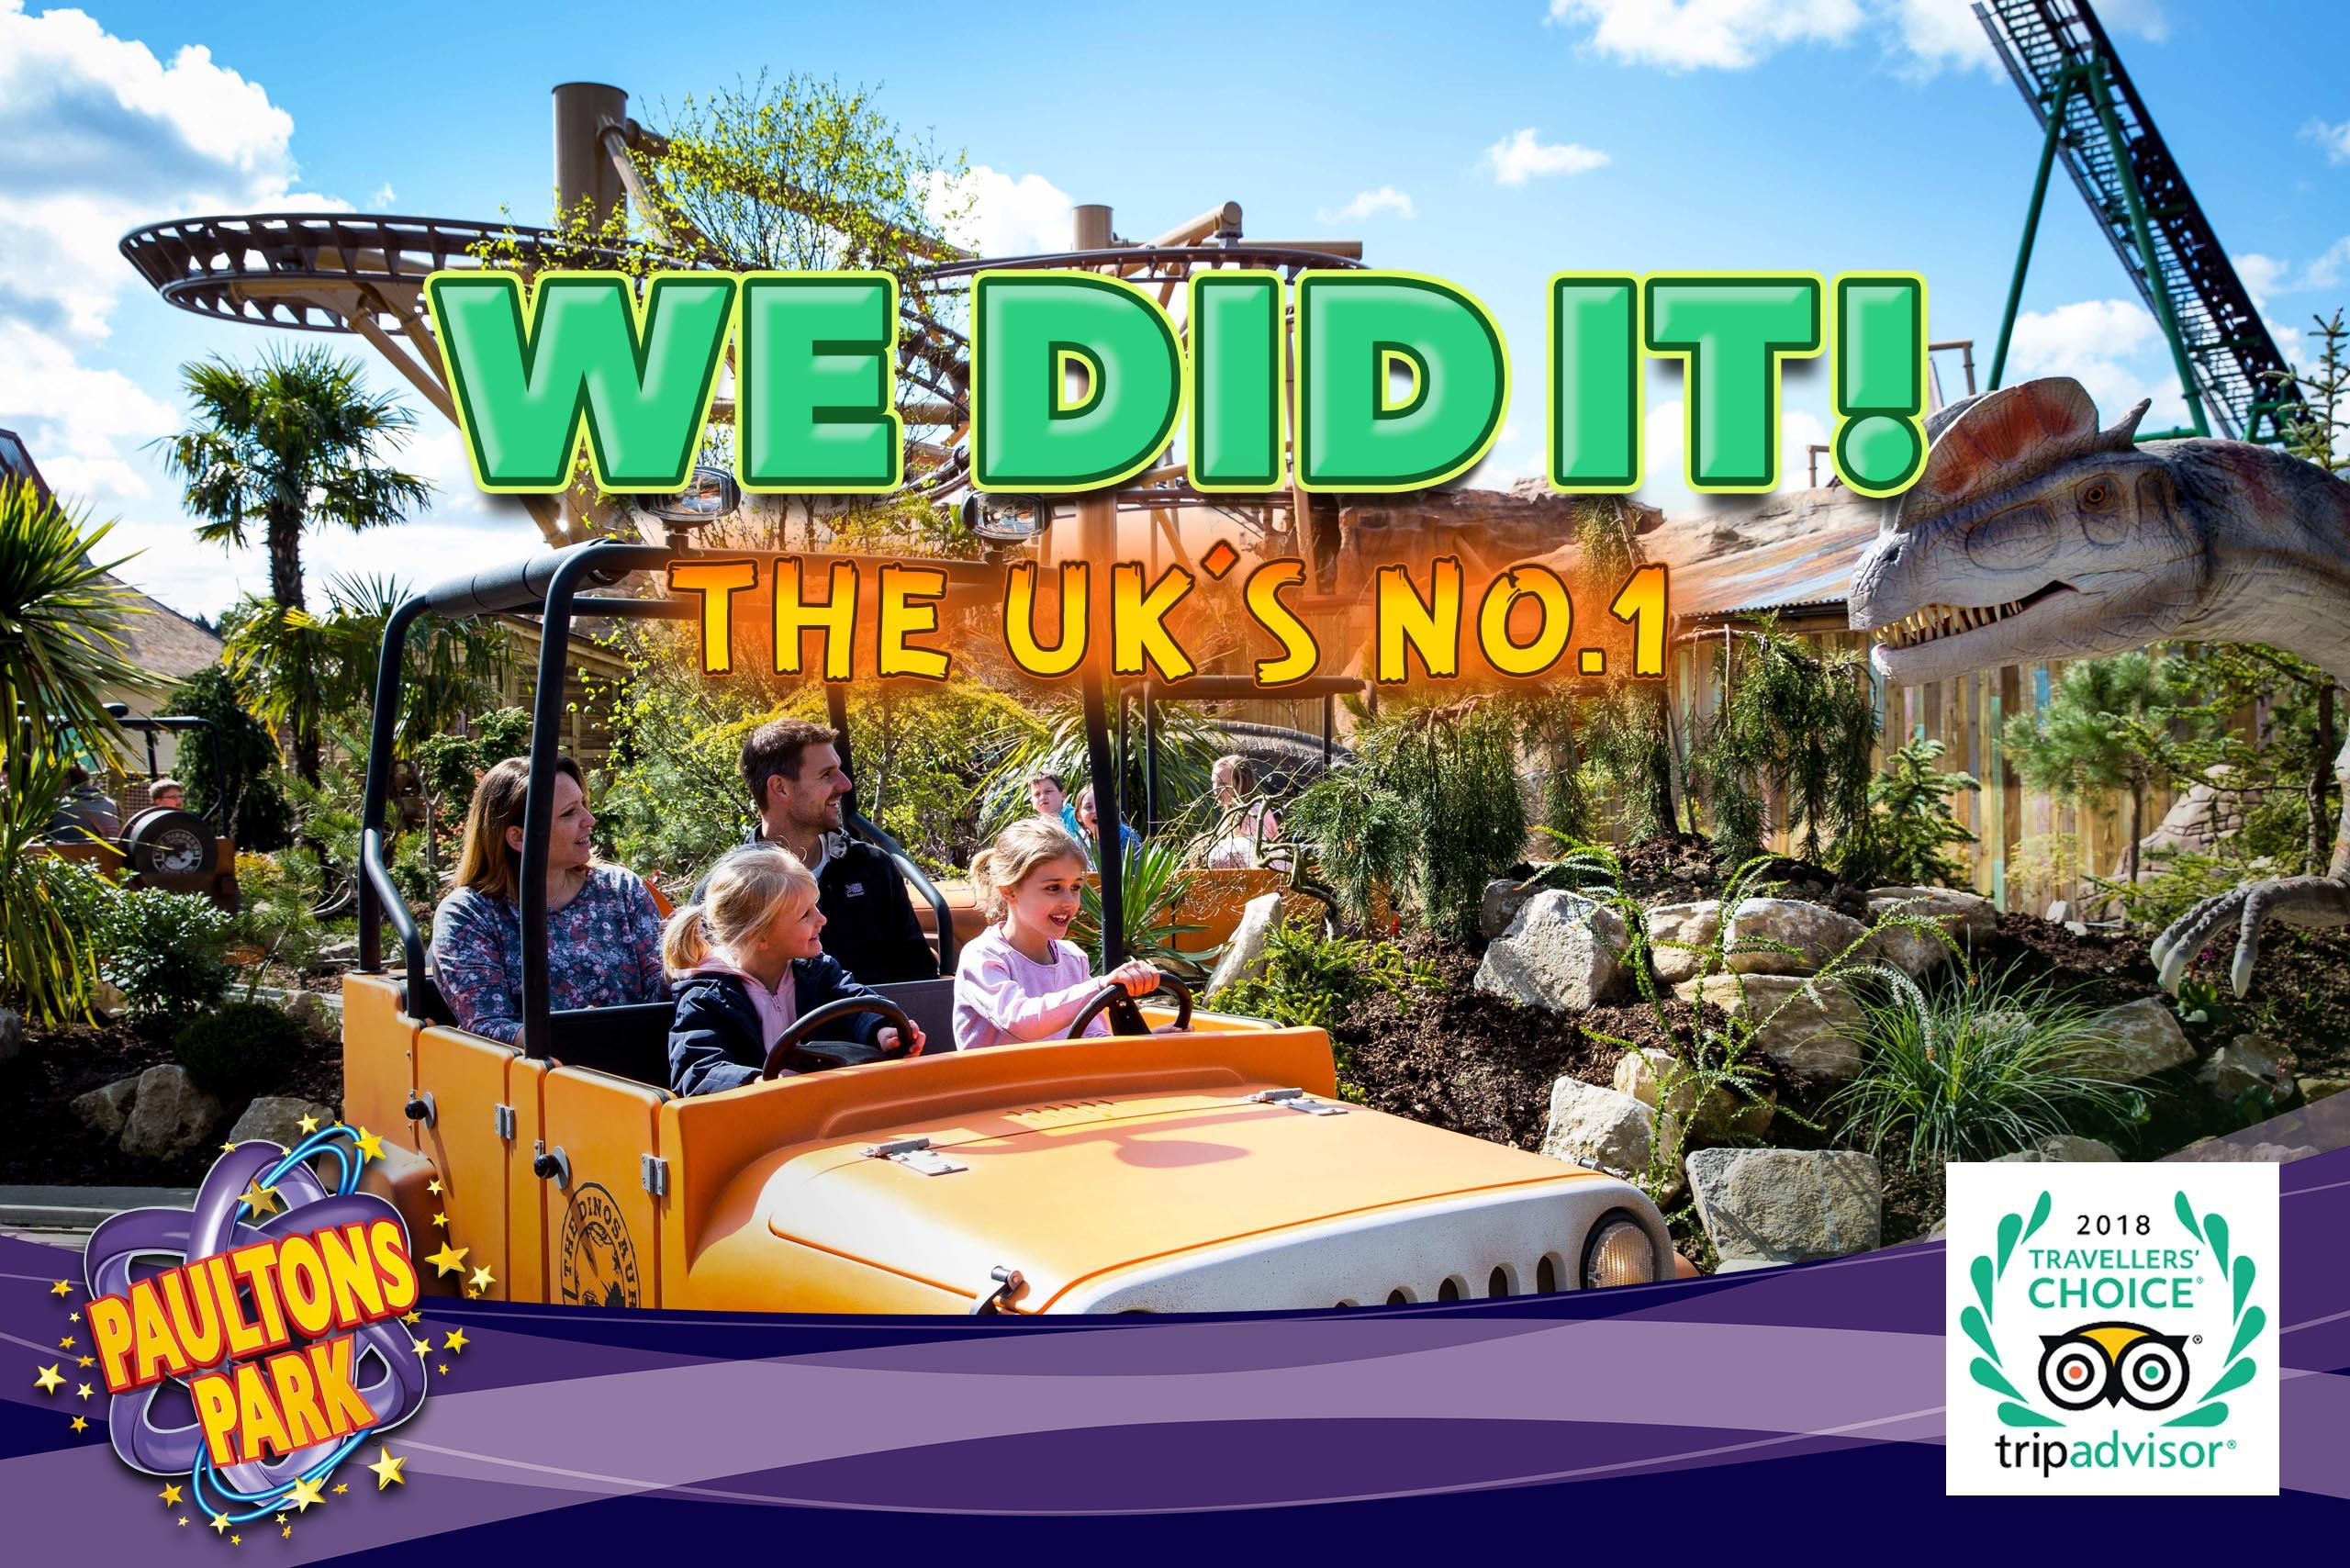 PAULTONS PARK IS NAMED THE UK'S BEST-RATED AMUSEMENT PARK